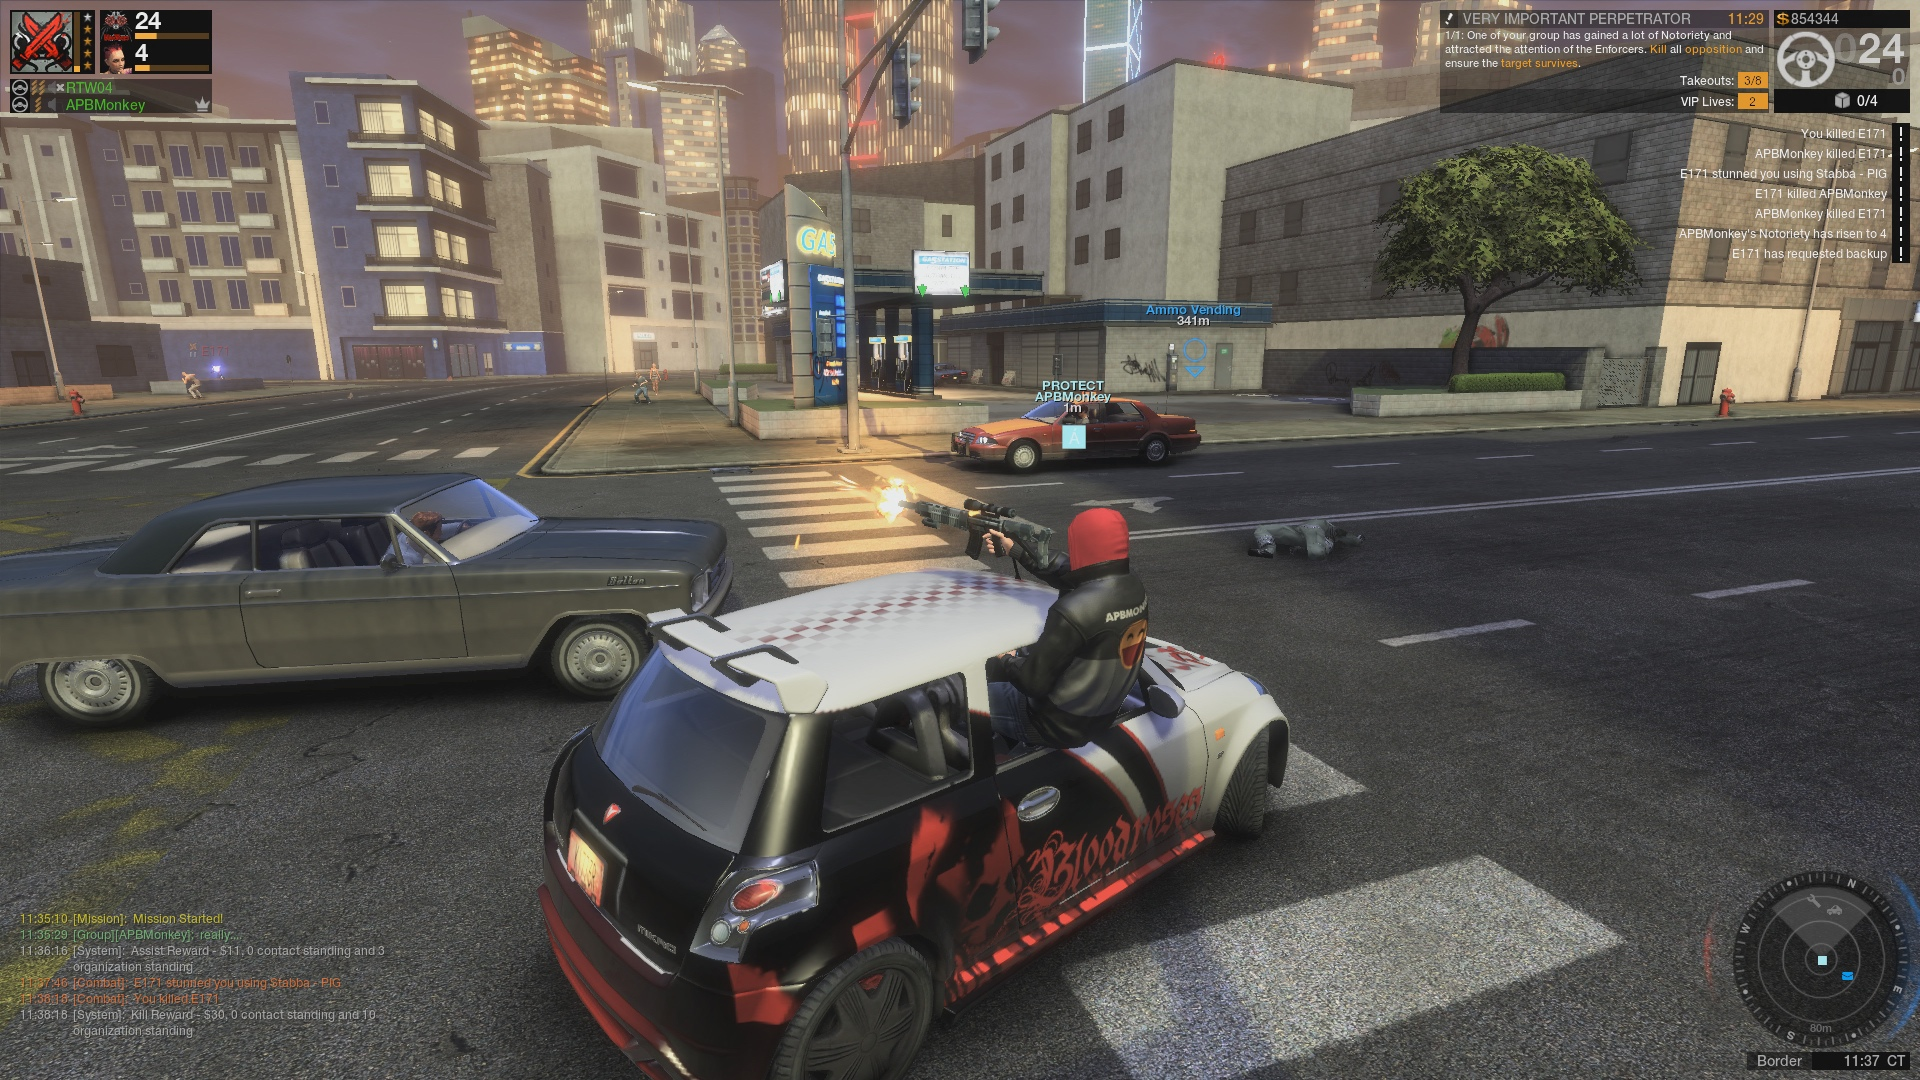 Matchmaking APB Reloaded General Discussions